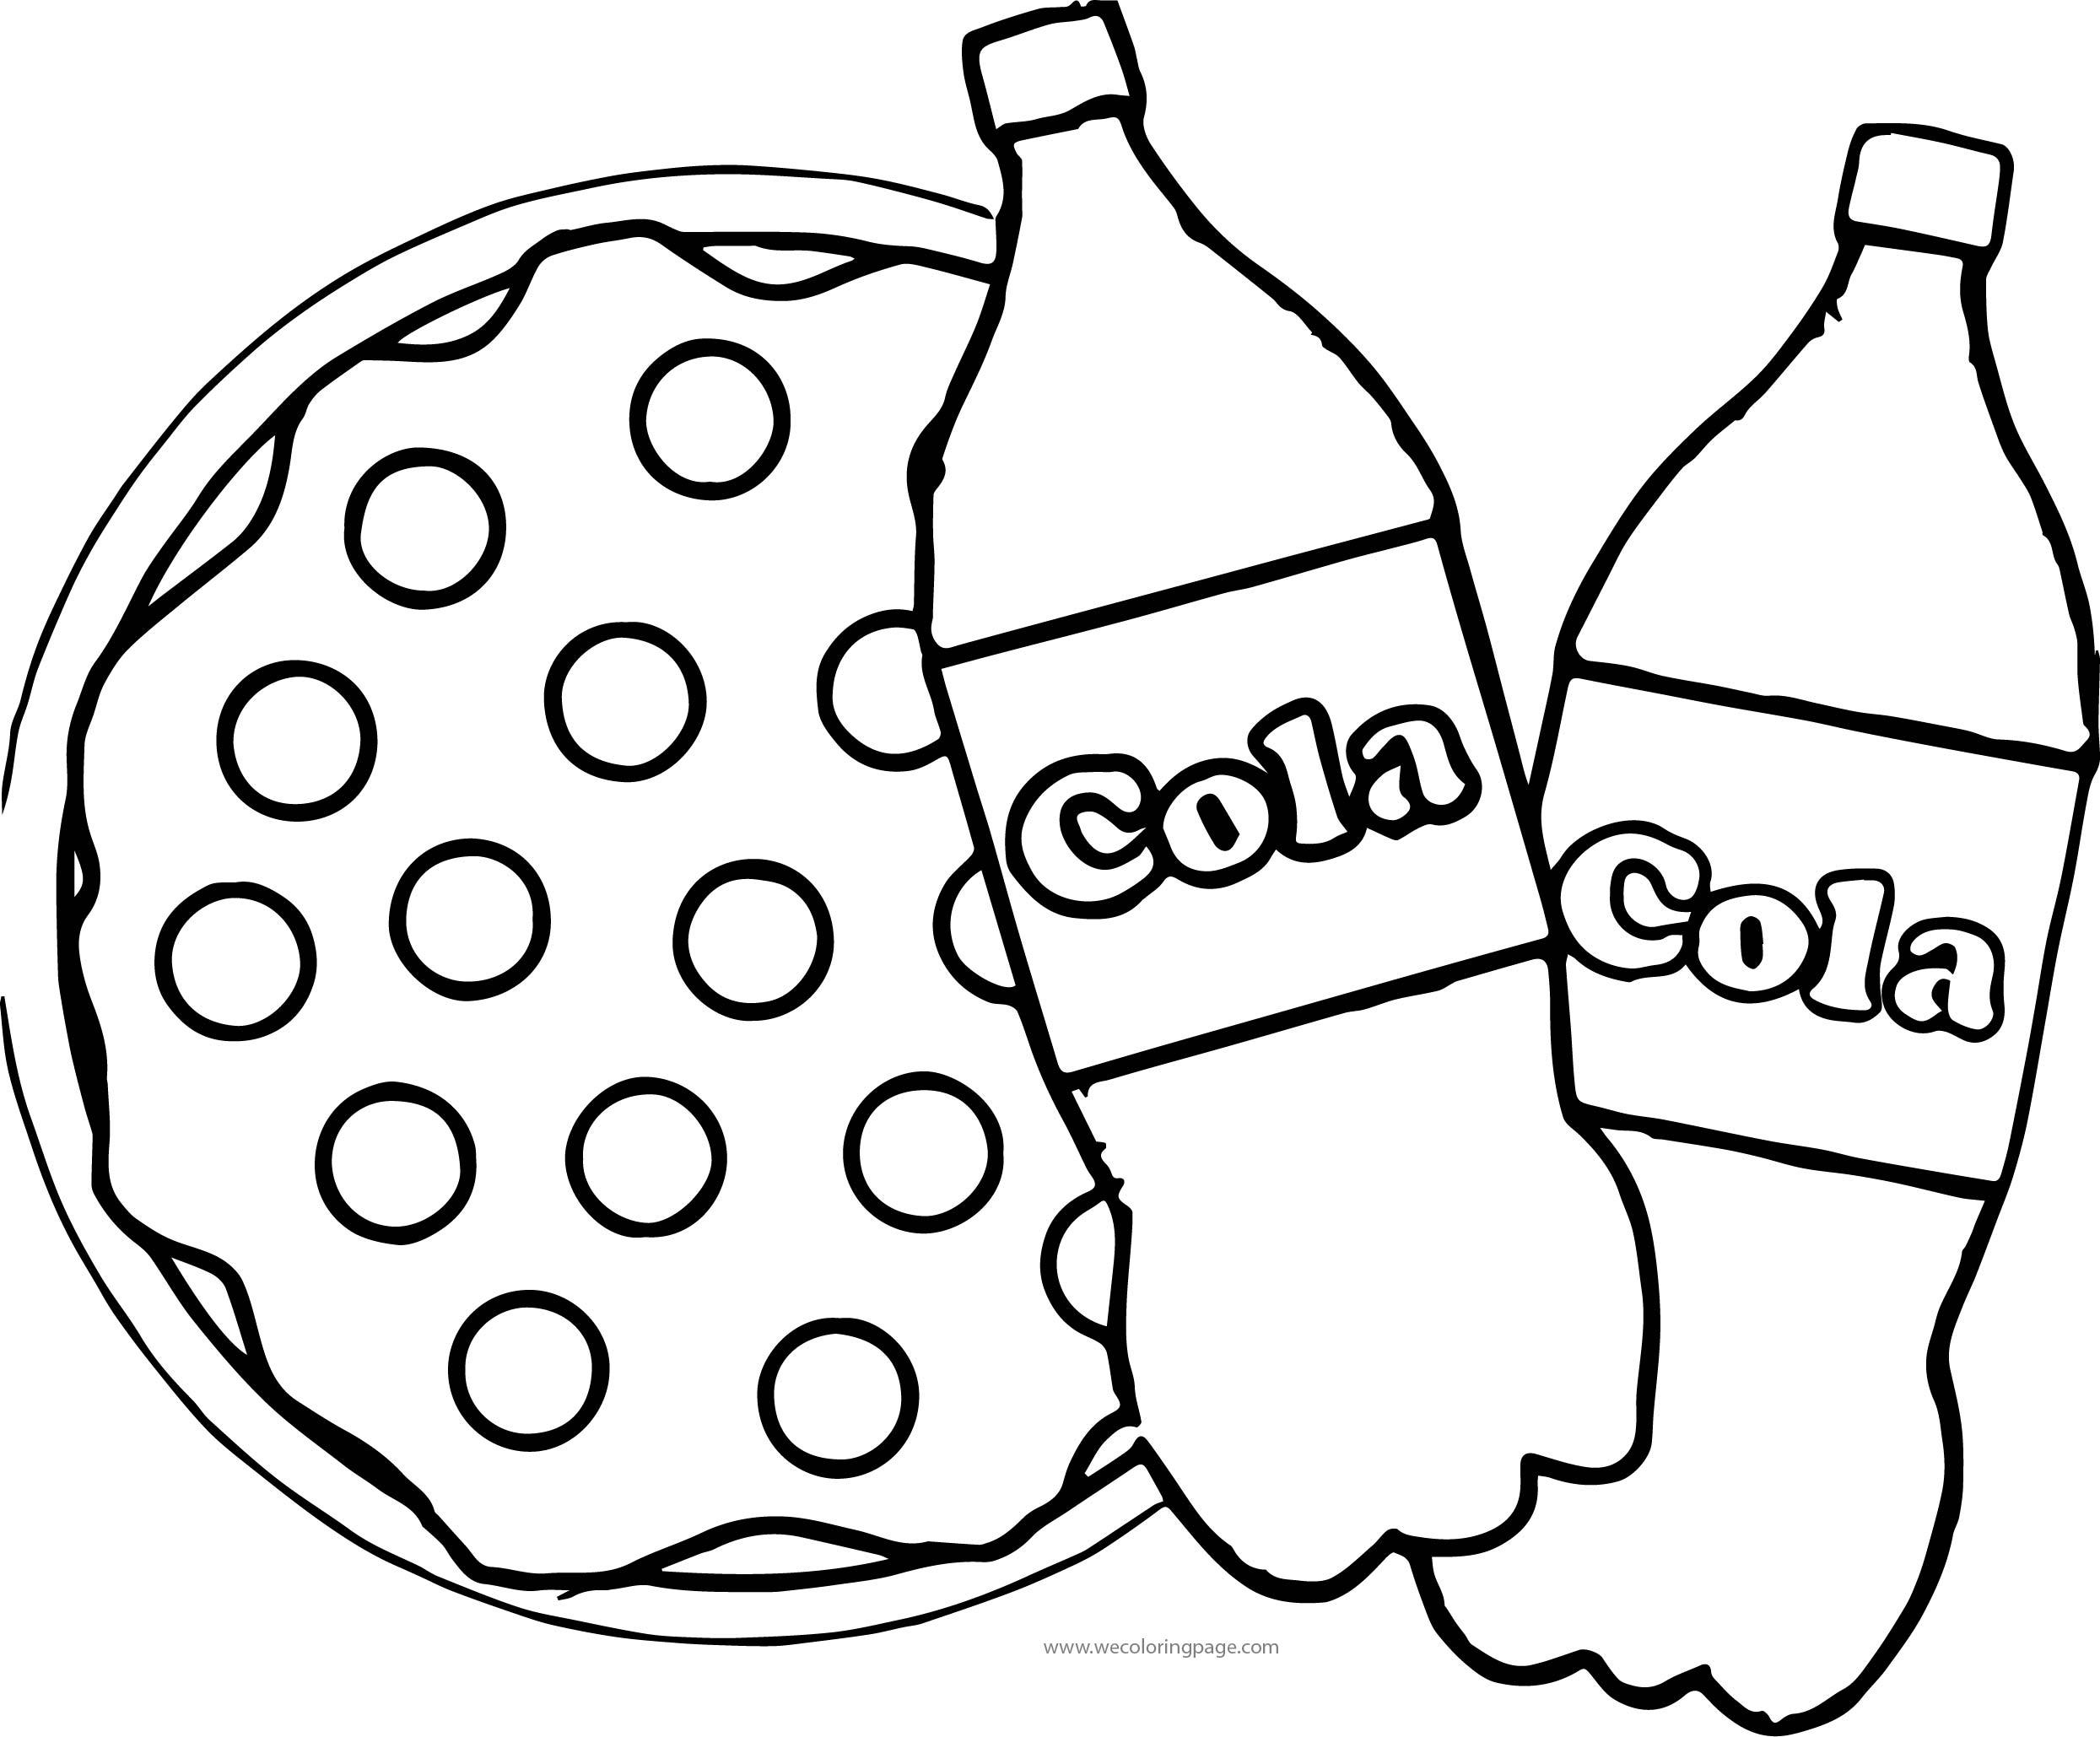 Cola Pizza Coloring Page